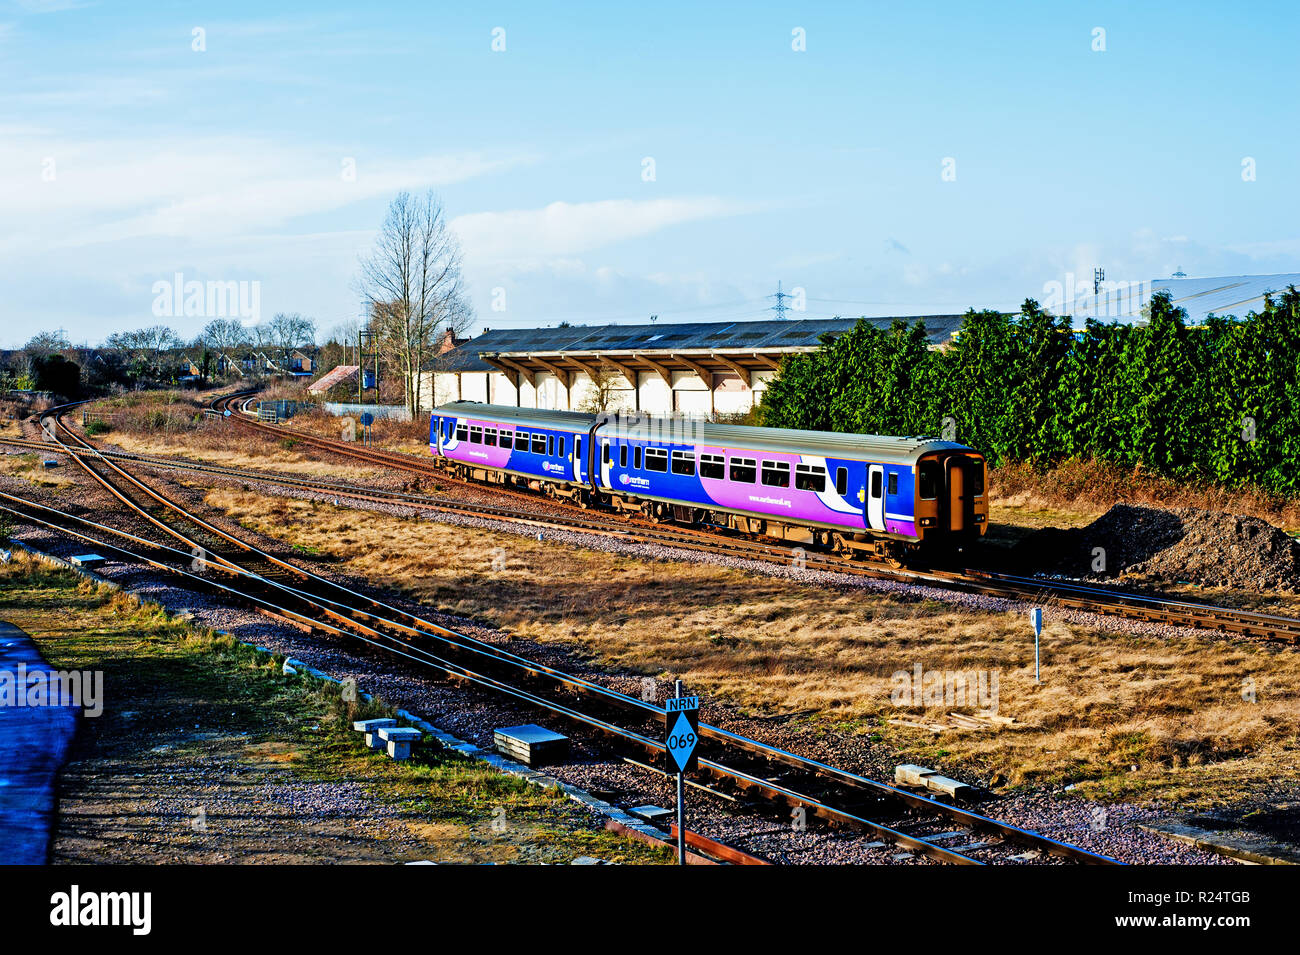 Northern Rail Train from Darlington at Eaglescliffe, North England - Stock Image